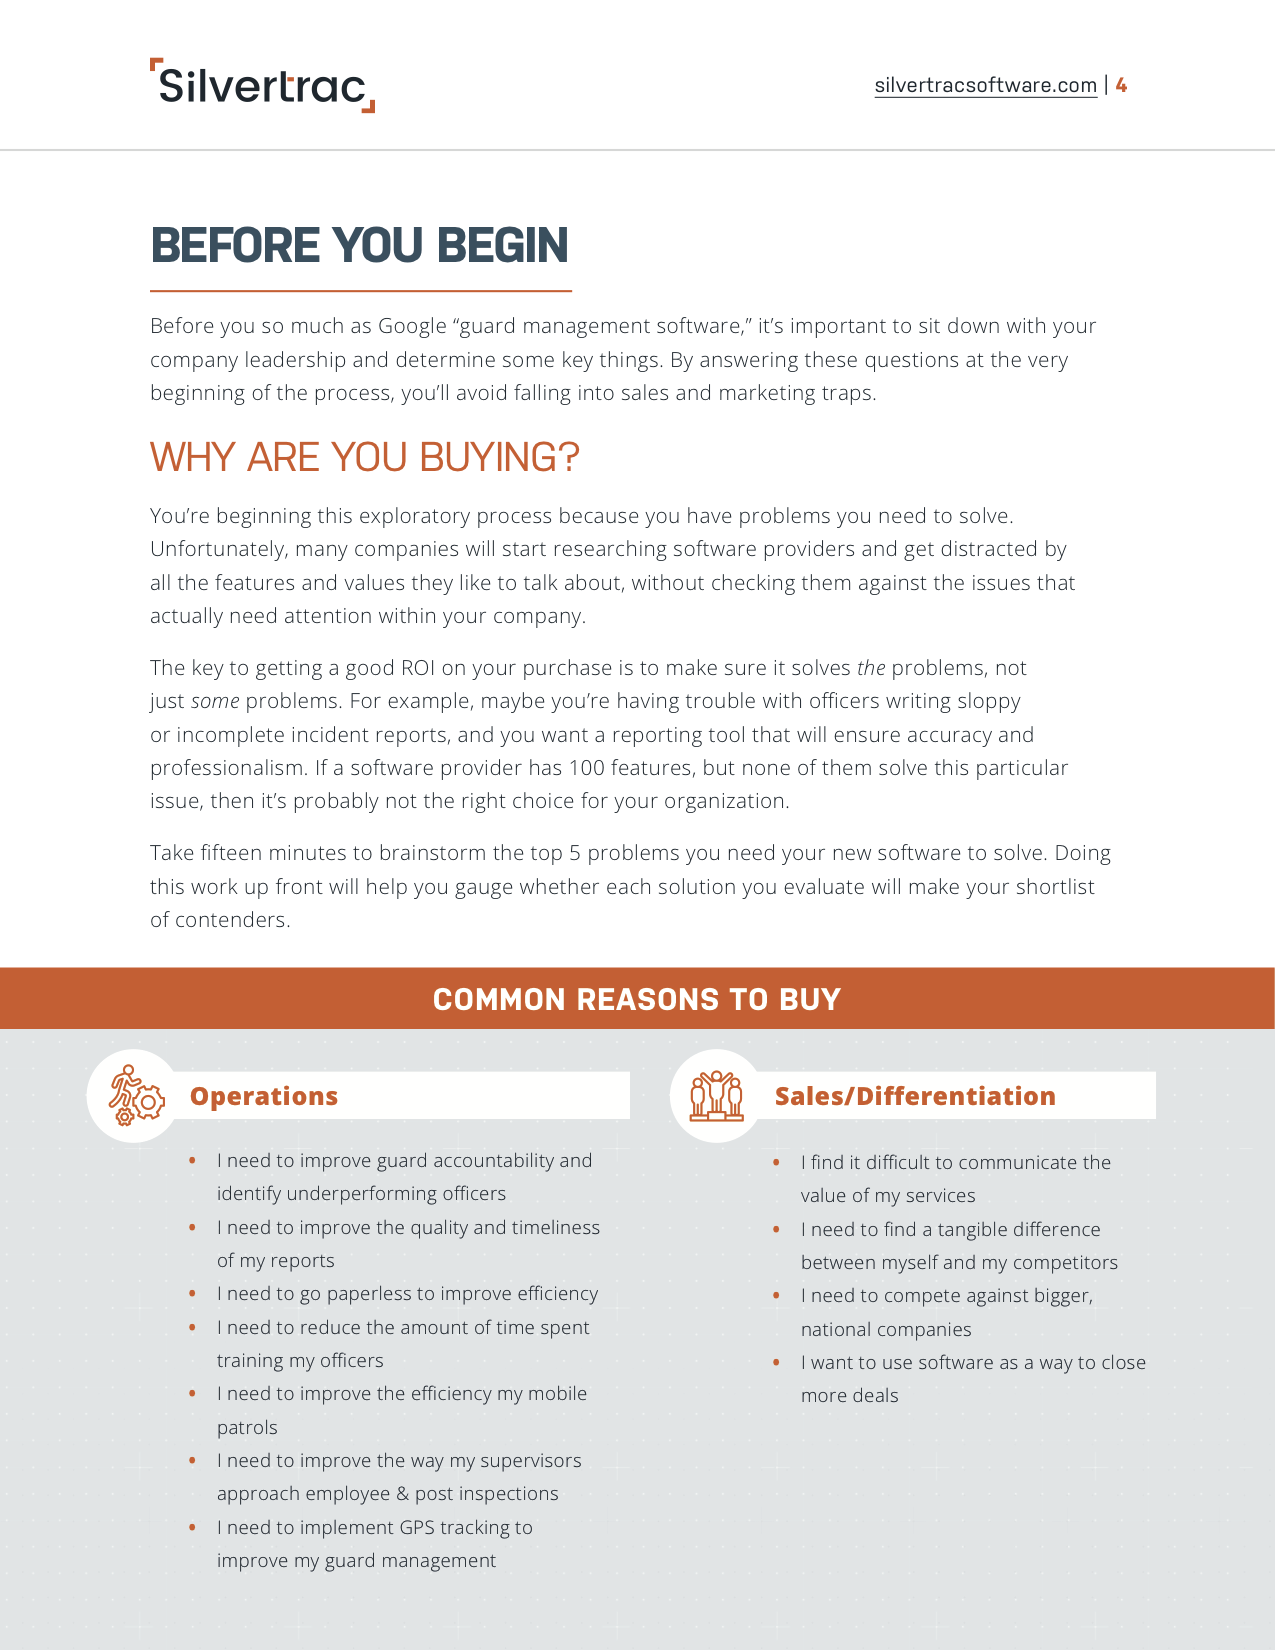 Your Guide to Buying Guard Management Software ebook provided by Silvertrac Software